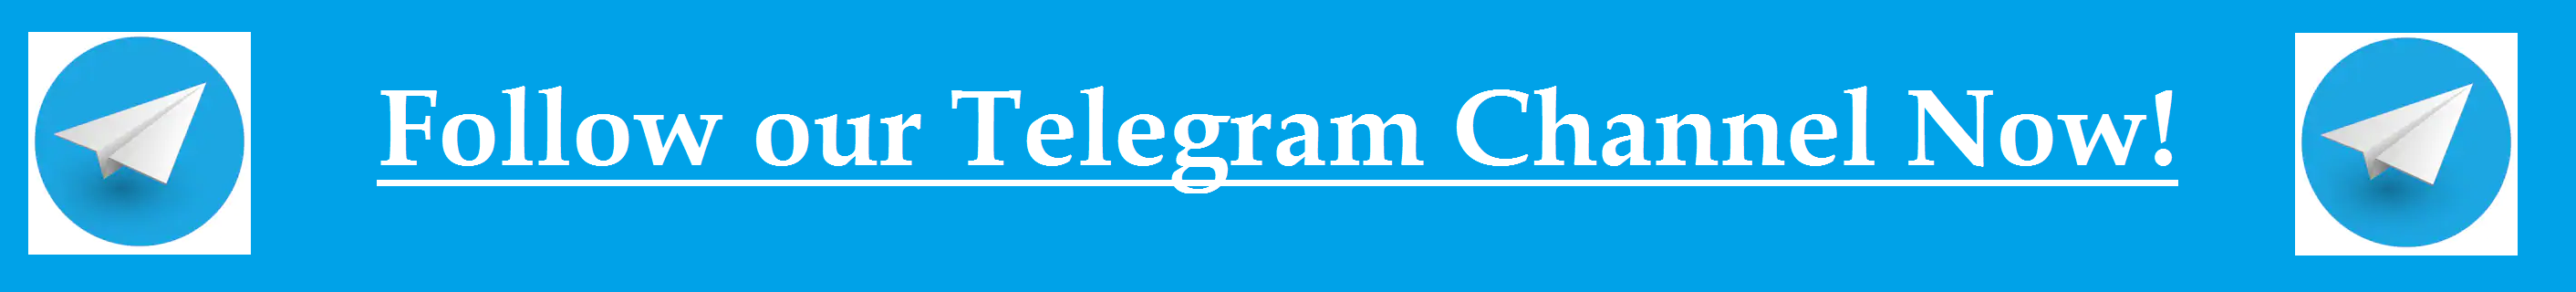 telegram channel of post a resume hr consultancy for job updates